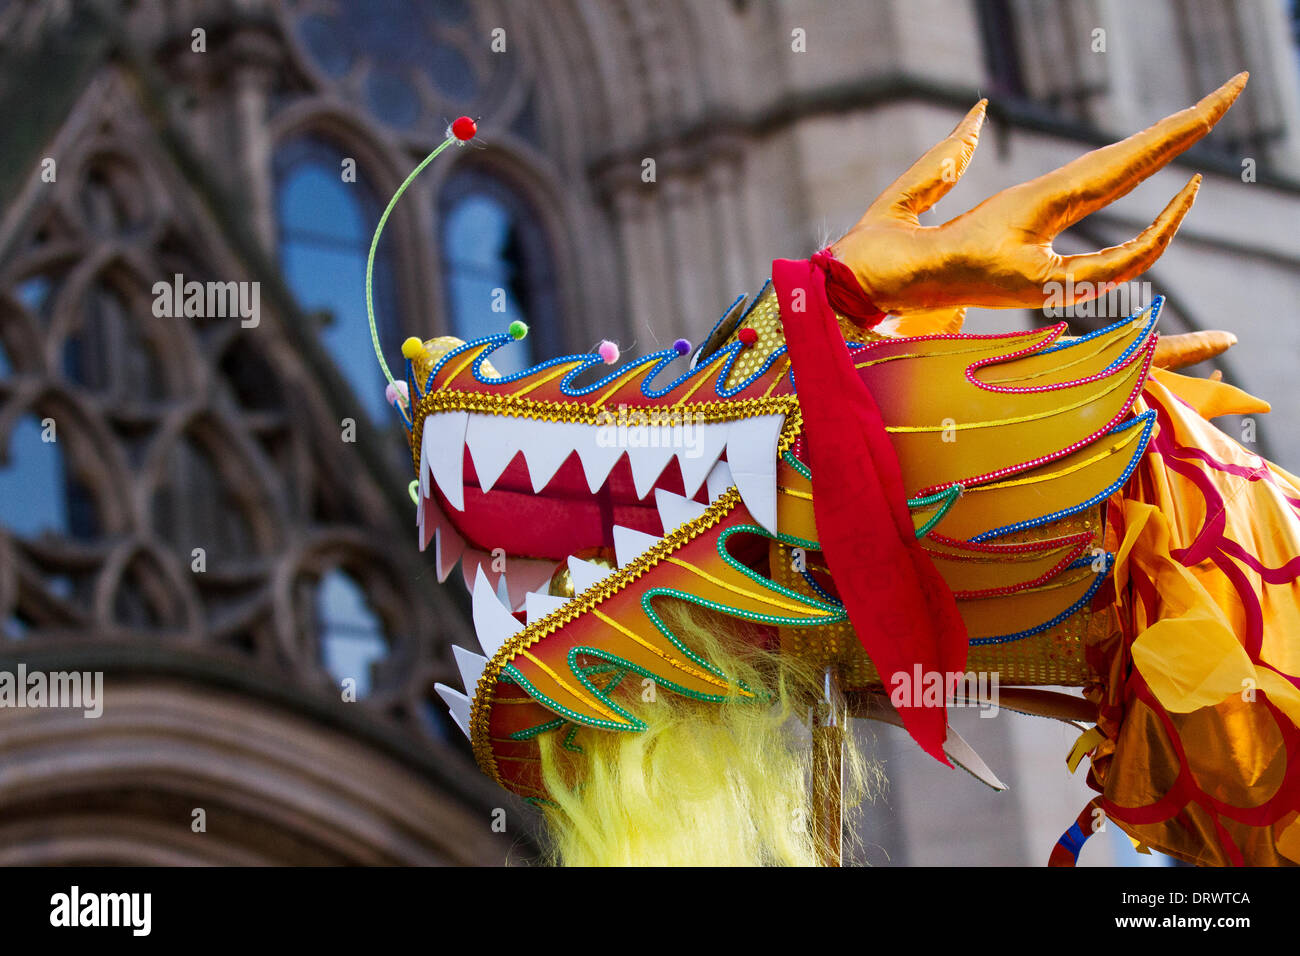 Manchester, Chinatown 2nd February, 2104.   High pole dragon dance at the Chinese New Year in Albert Square, Manchester the North's biggest Chinese New Year celebrations. Manchester's Chinatown is one of Europe's biggest tucked into a narrow grid of streets behind Piccadilly Gardens.  With a 175-foot paper dragon, a lion dance, martial arts demonstrations, the Dragon Parade is one of the highlights of Manchester's annual events calendar. Credit:  Mar Photographics/Alamy Live News. - Stock Image